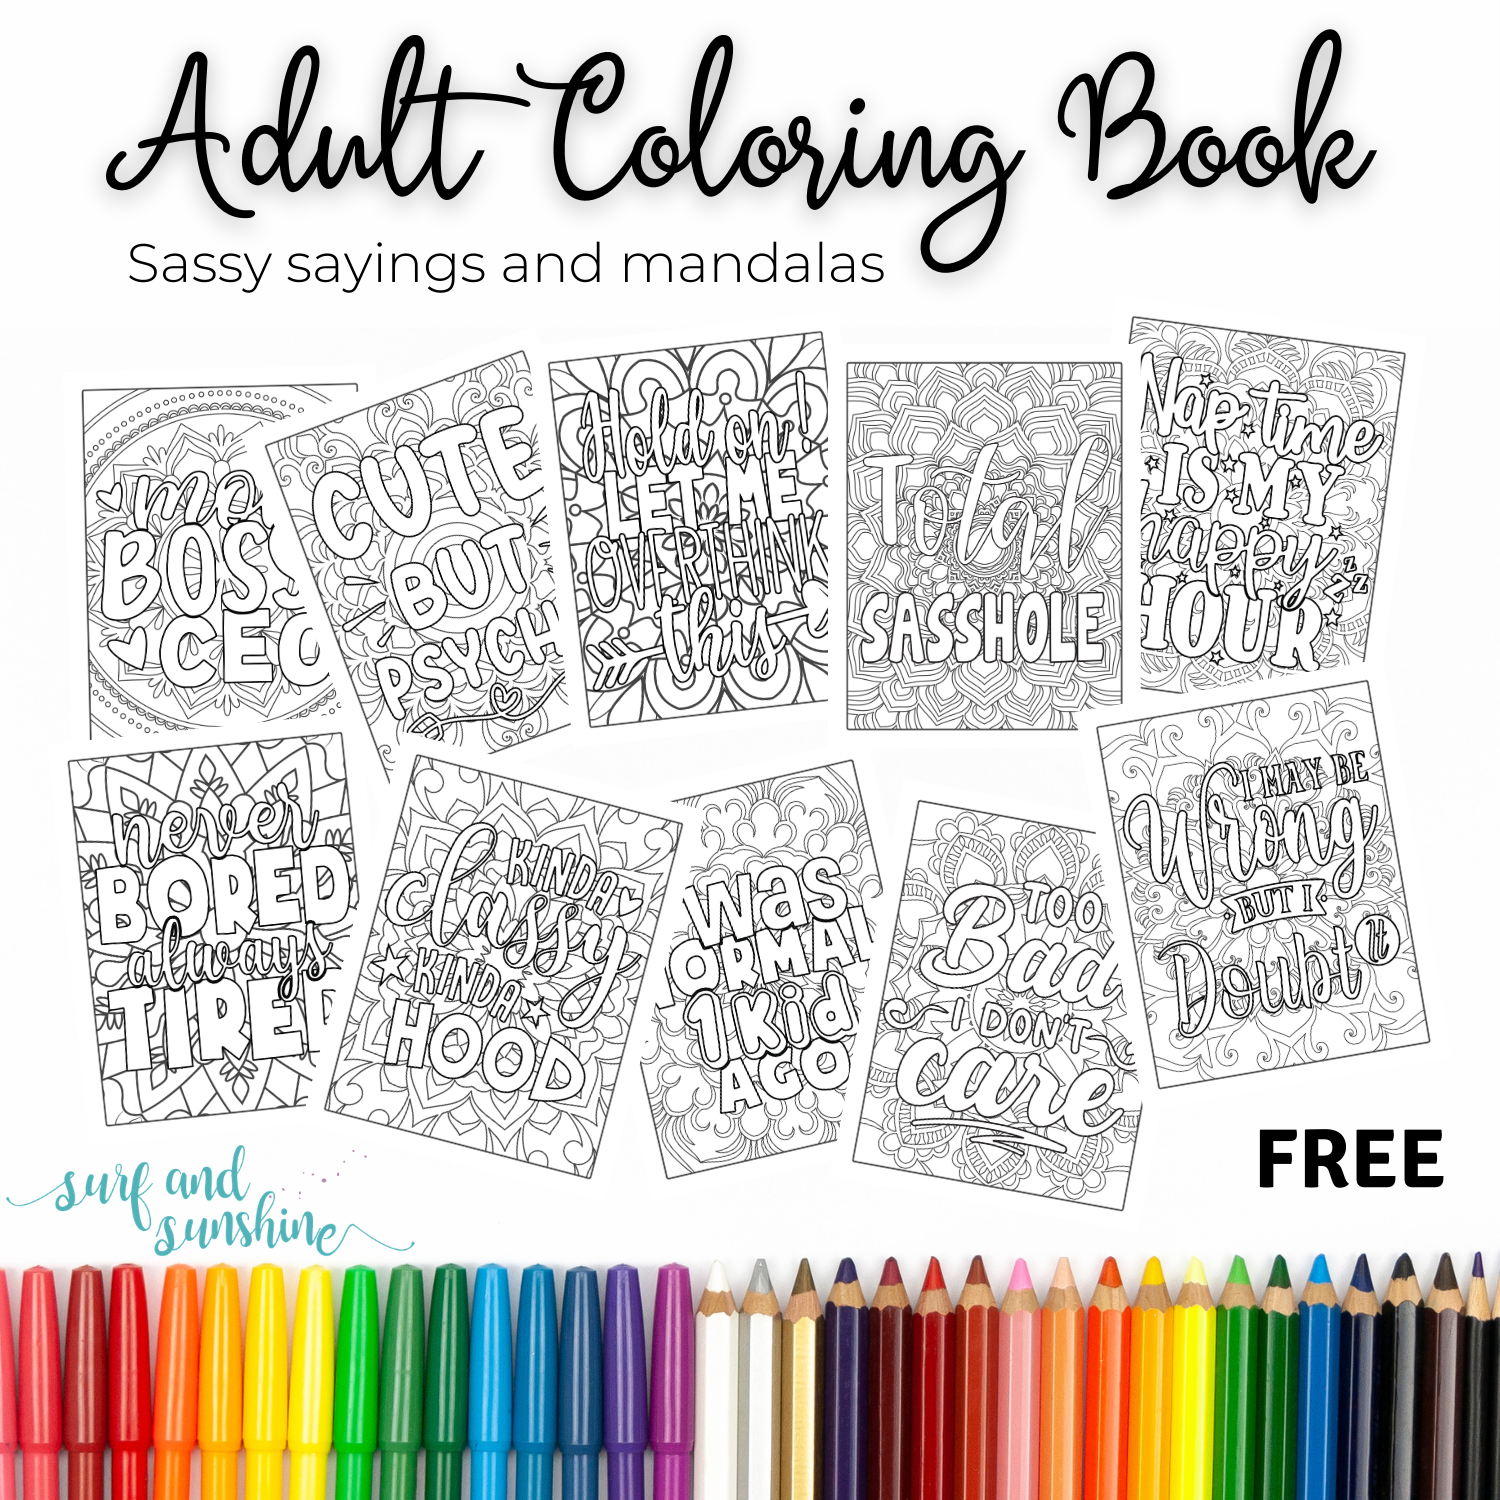 Sassy Quotes on Mandalas Adult Coloring Book